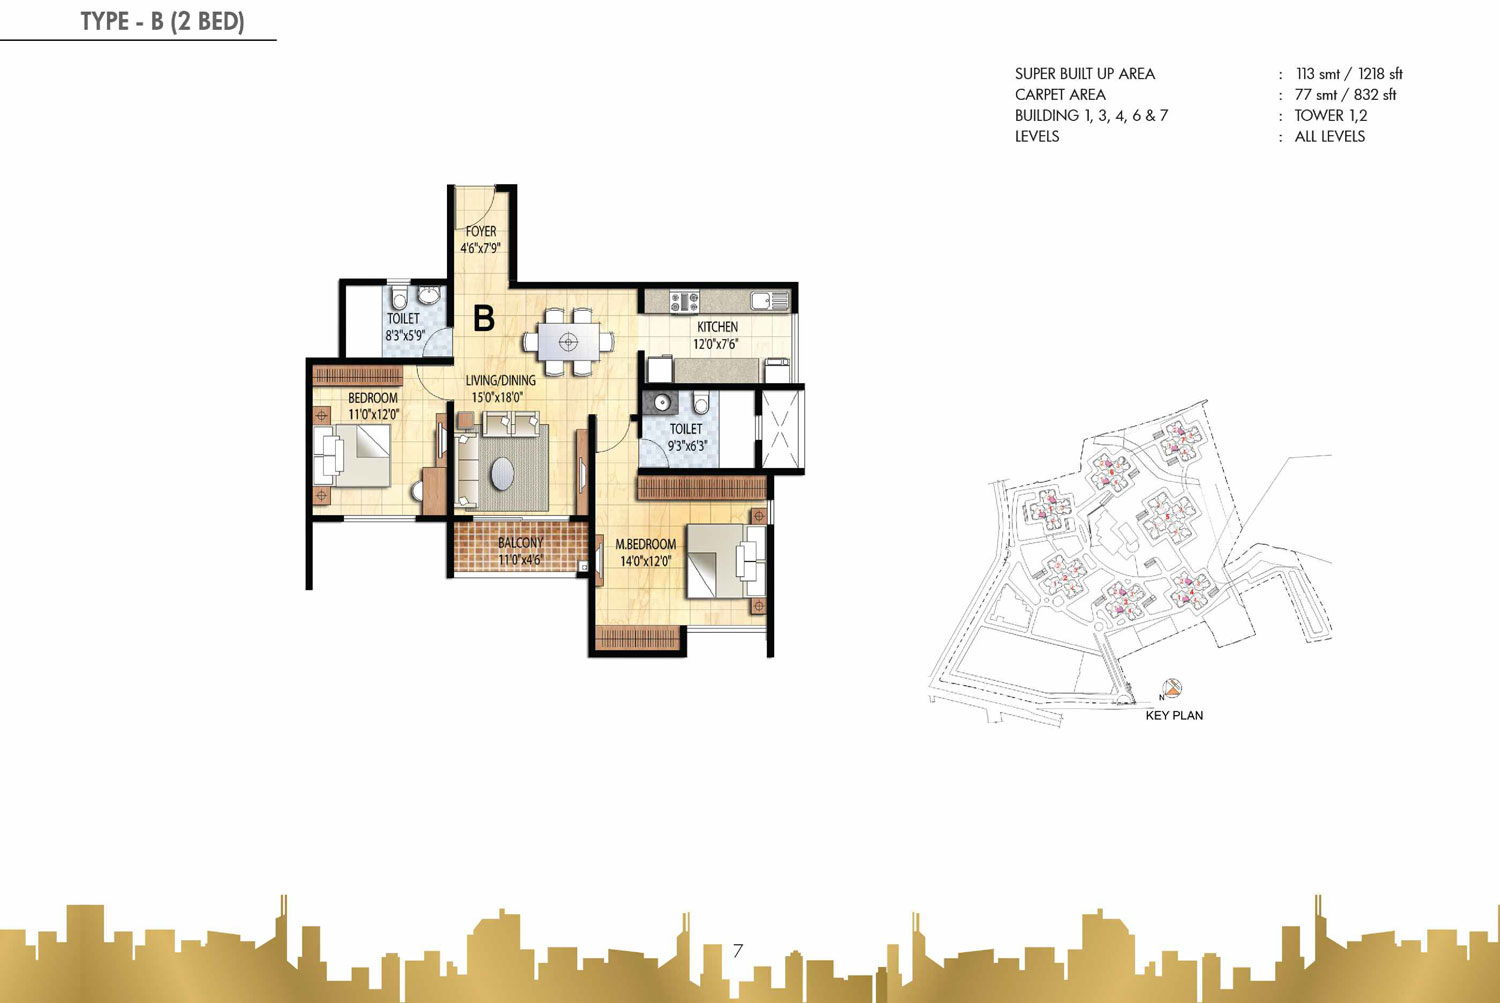 Type B - 2 Bed - 1218 Sq Ft